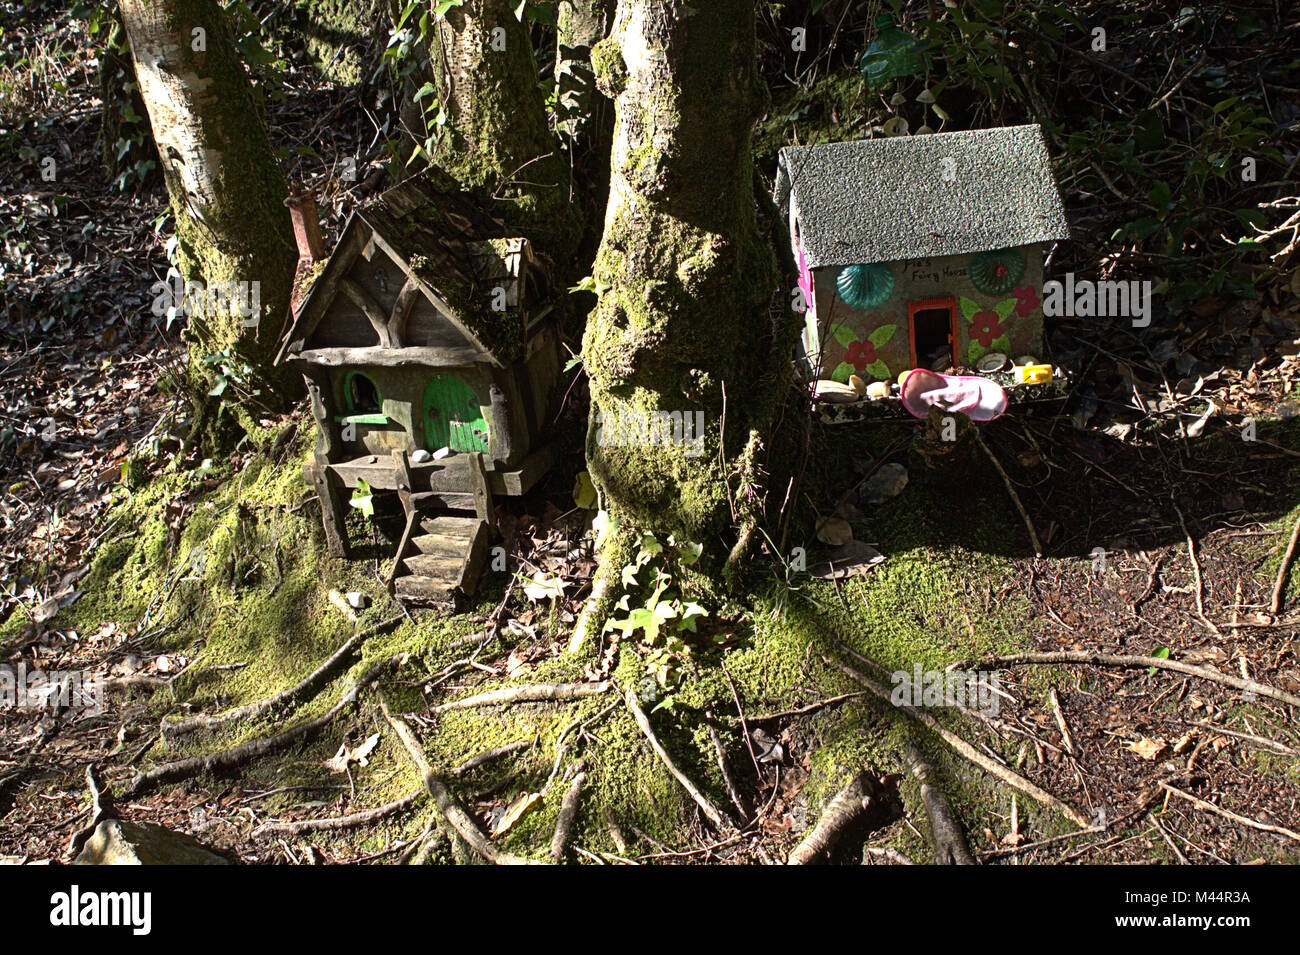 fairy-houses-left-in-the-woods-ireland-has-a-history-of-houses-left-M44R3A.jpg